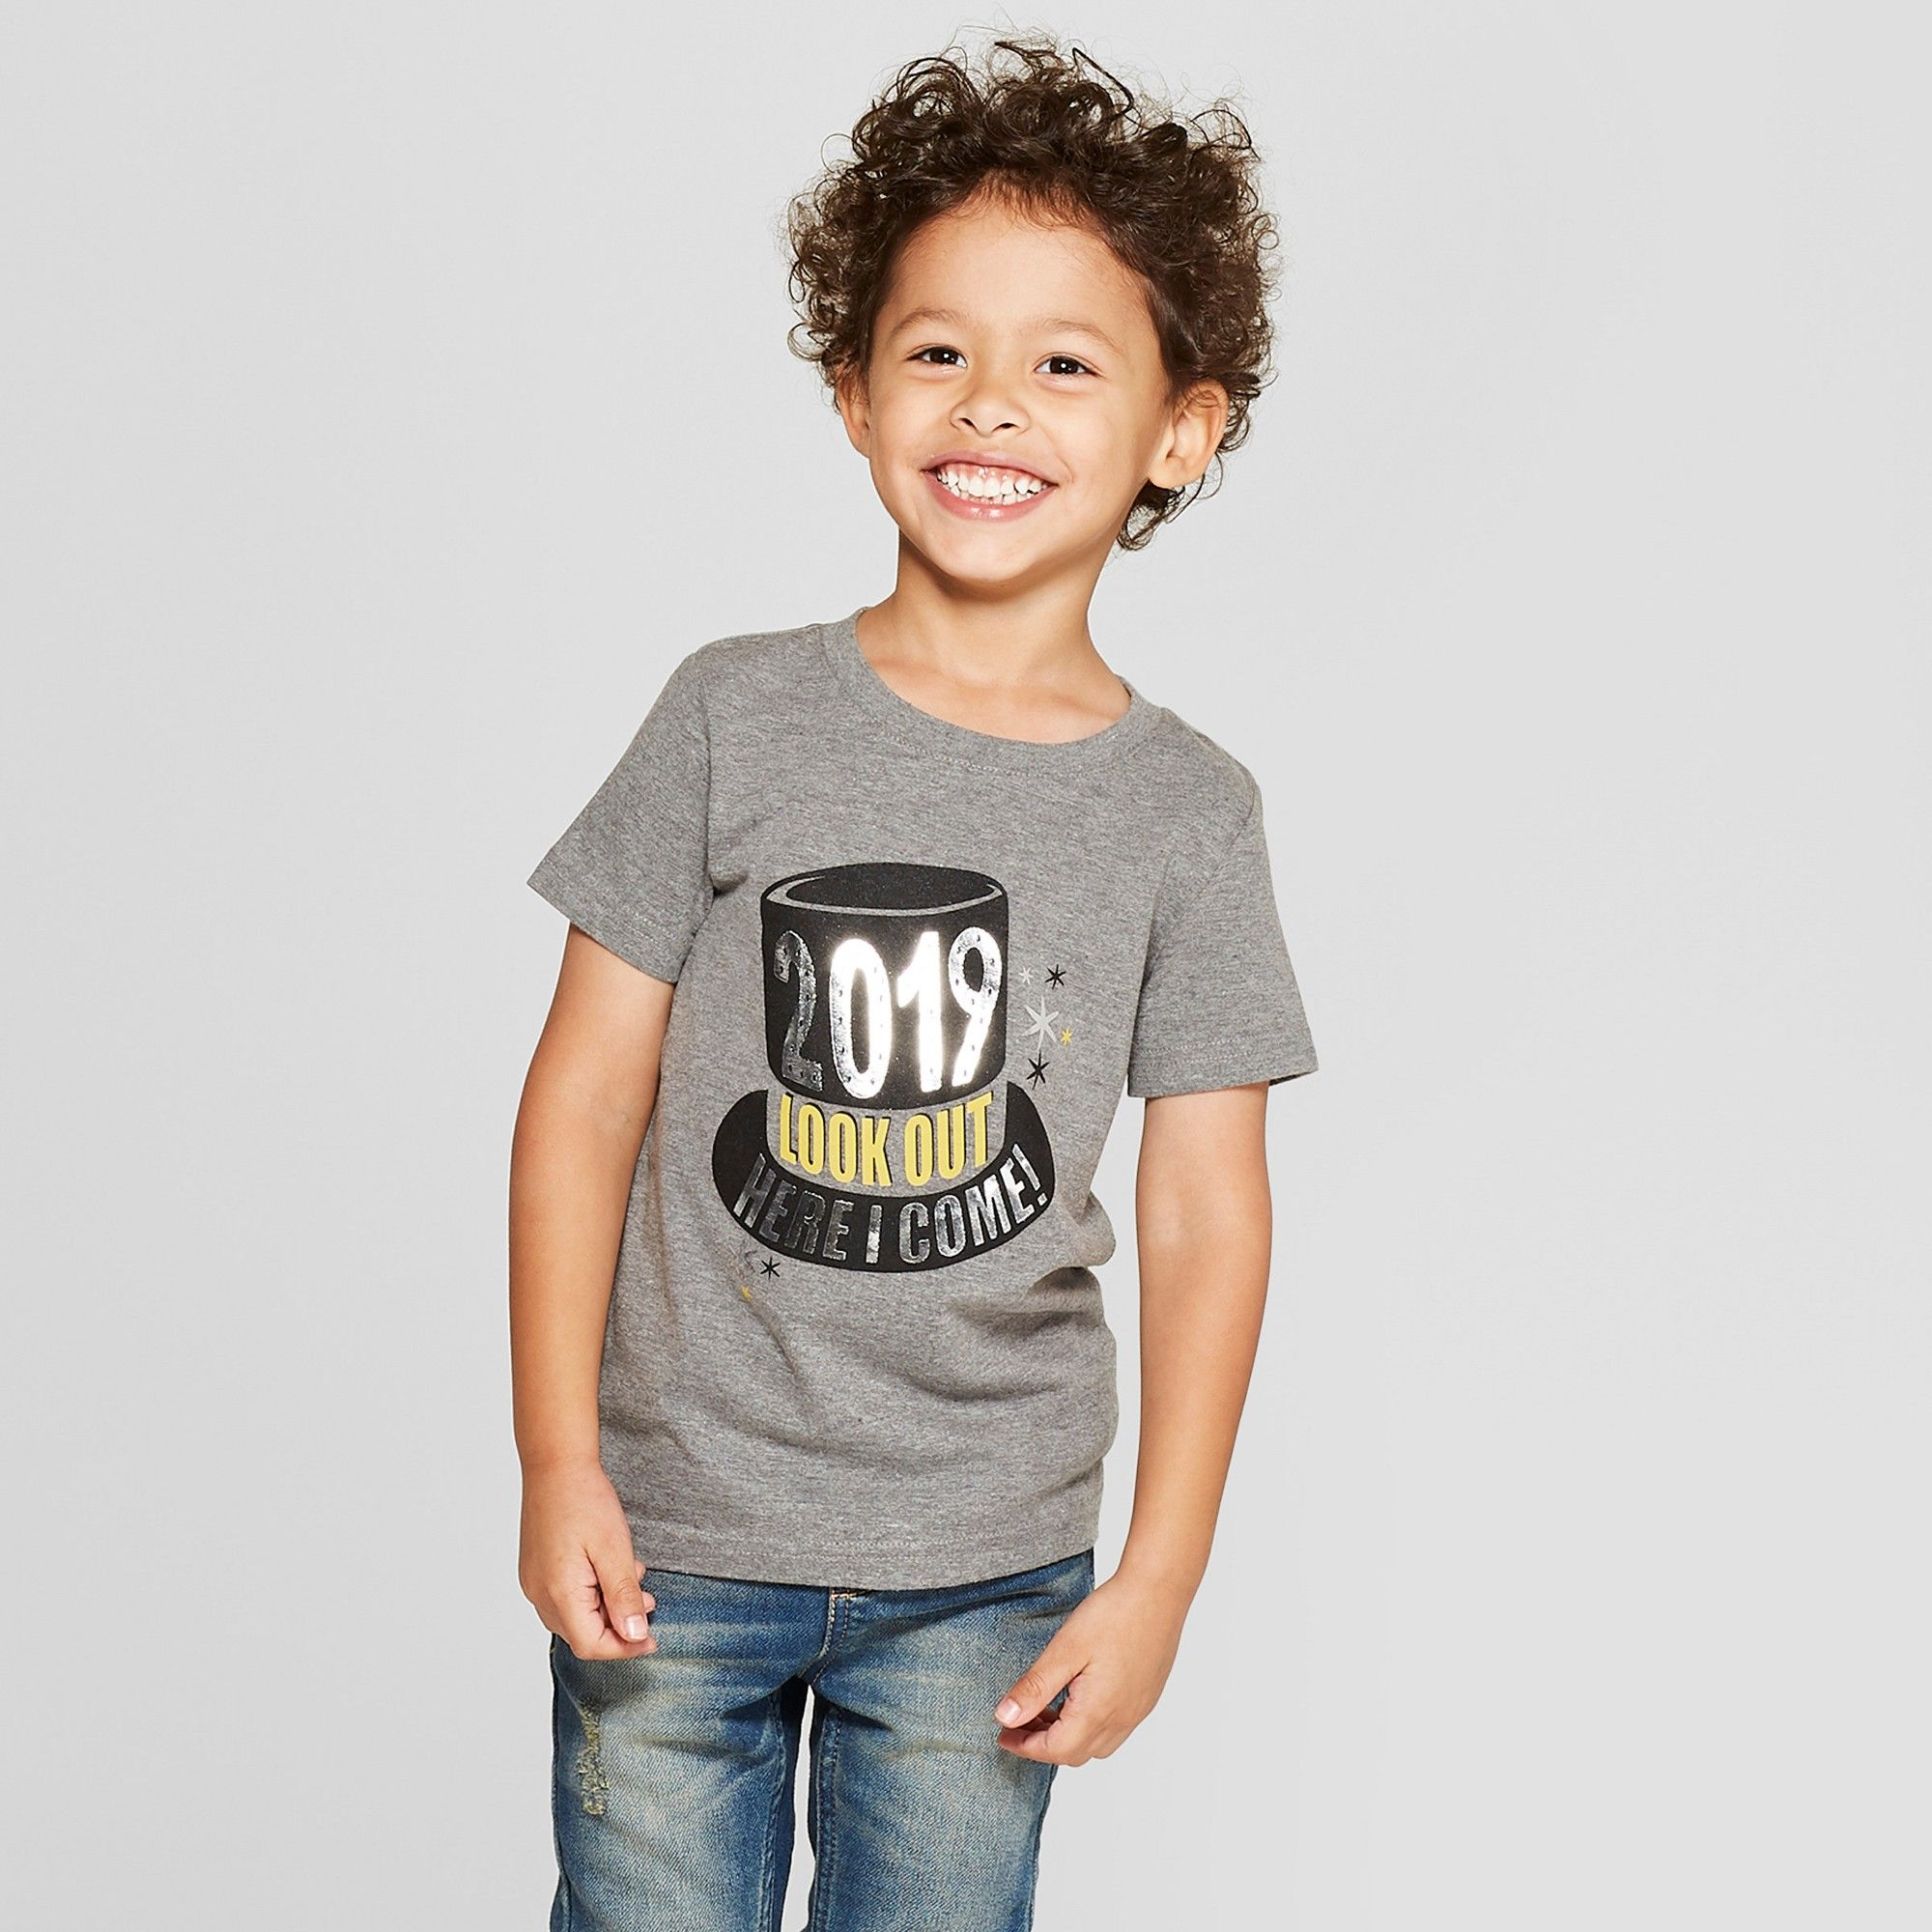 f7f6cf10873 Toddler Boys  2019 Look Out Here I Come Short Sleeve T-Shirt - Cat   Jack  Black 12M